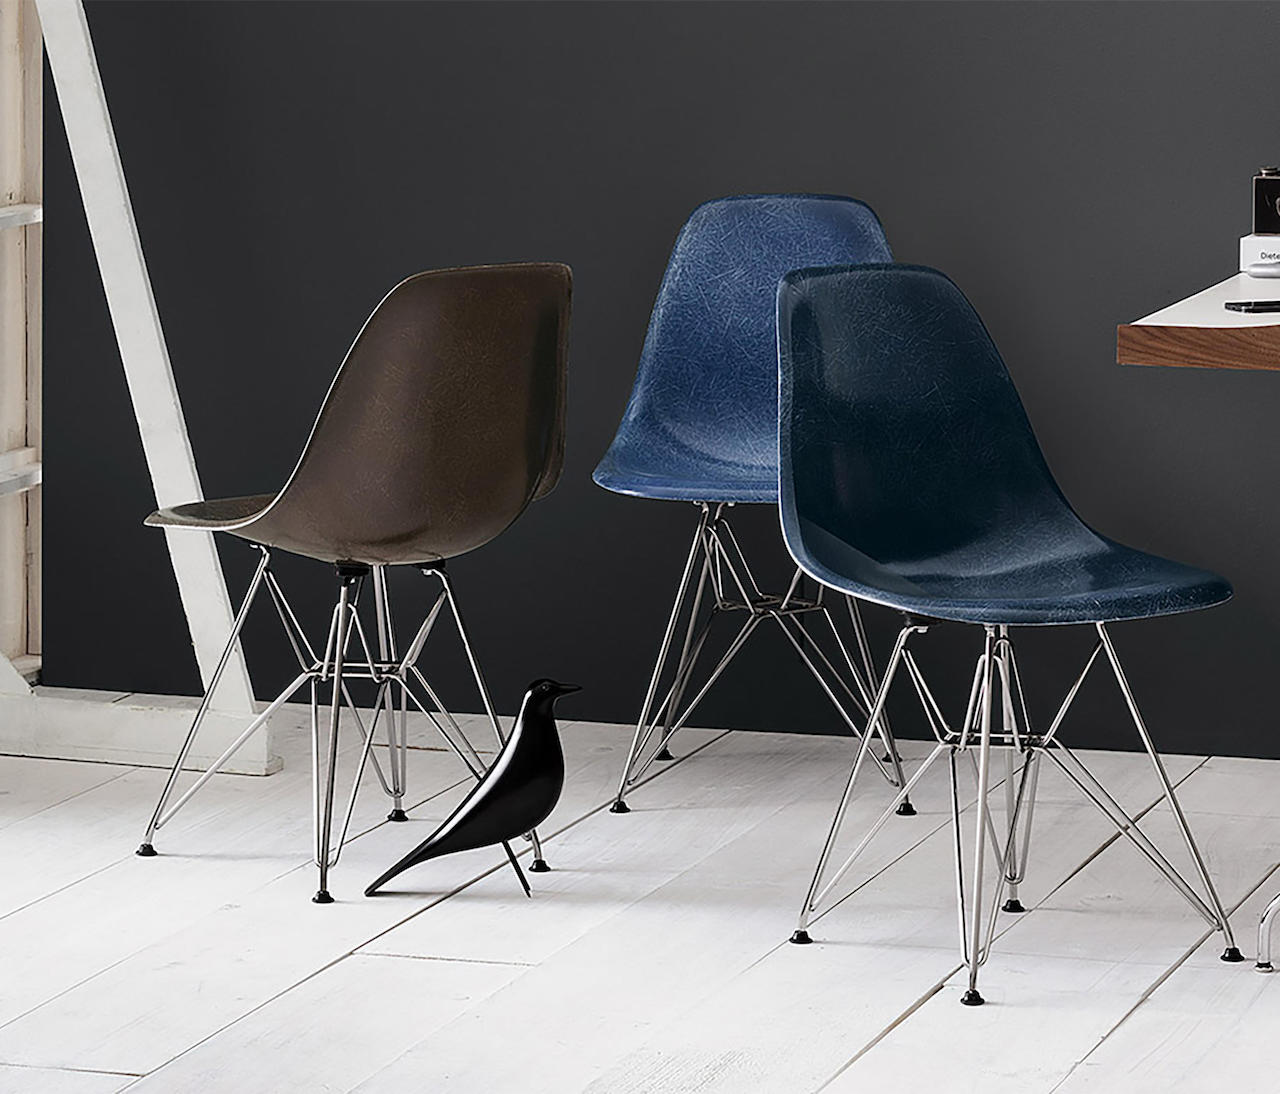 Eames Fiberglass chair, design Charles & Ray Eames, Vitra 1950, in Fiberglass 2018